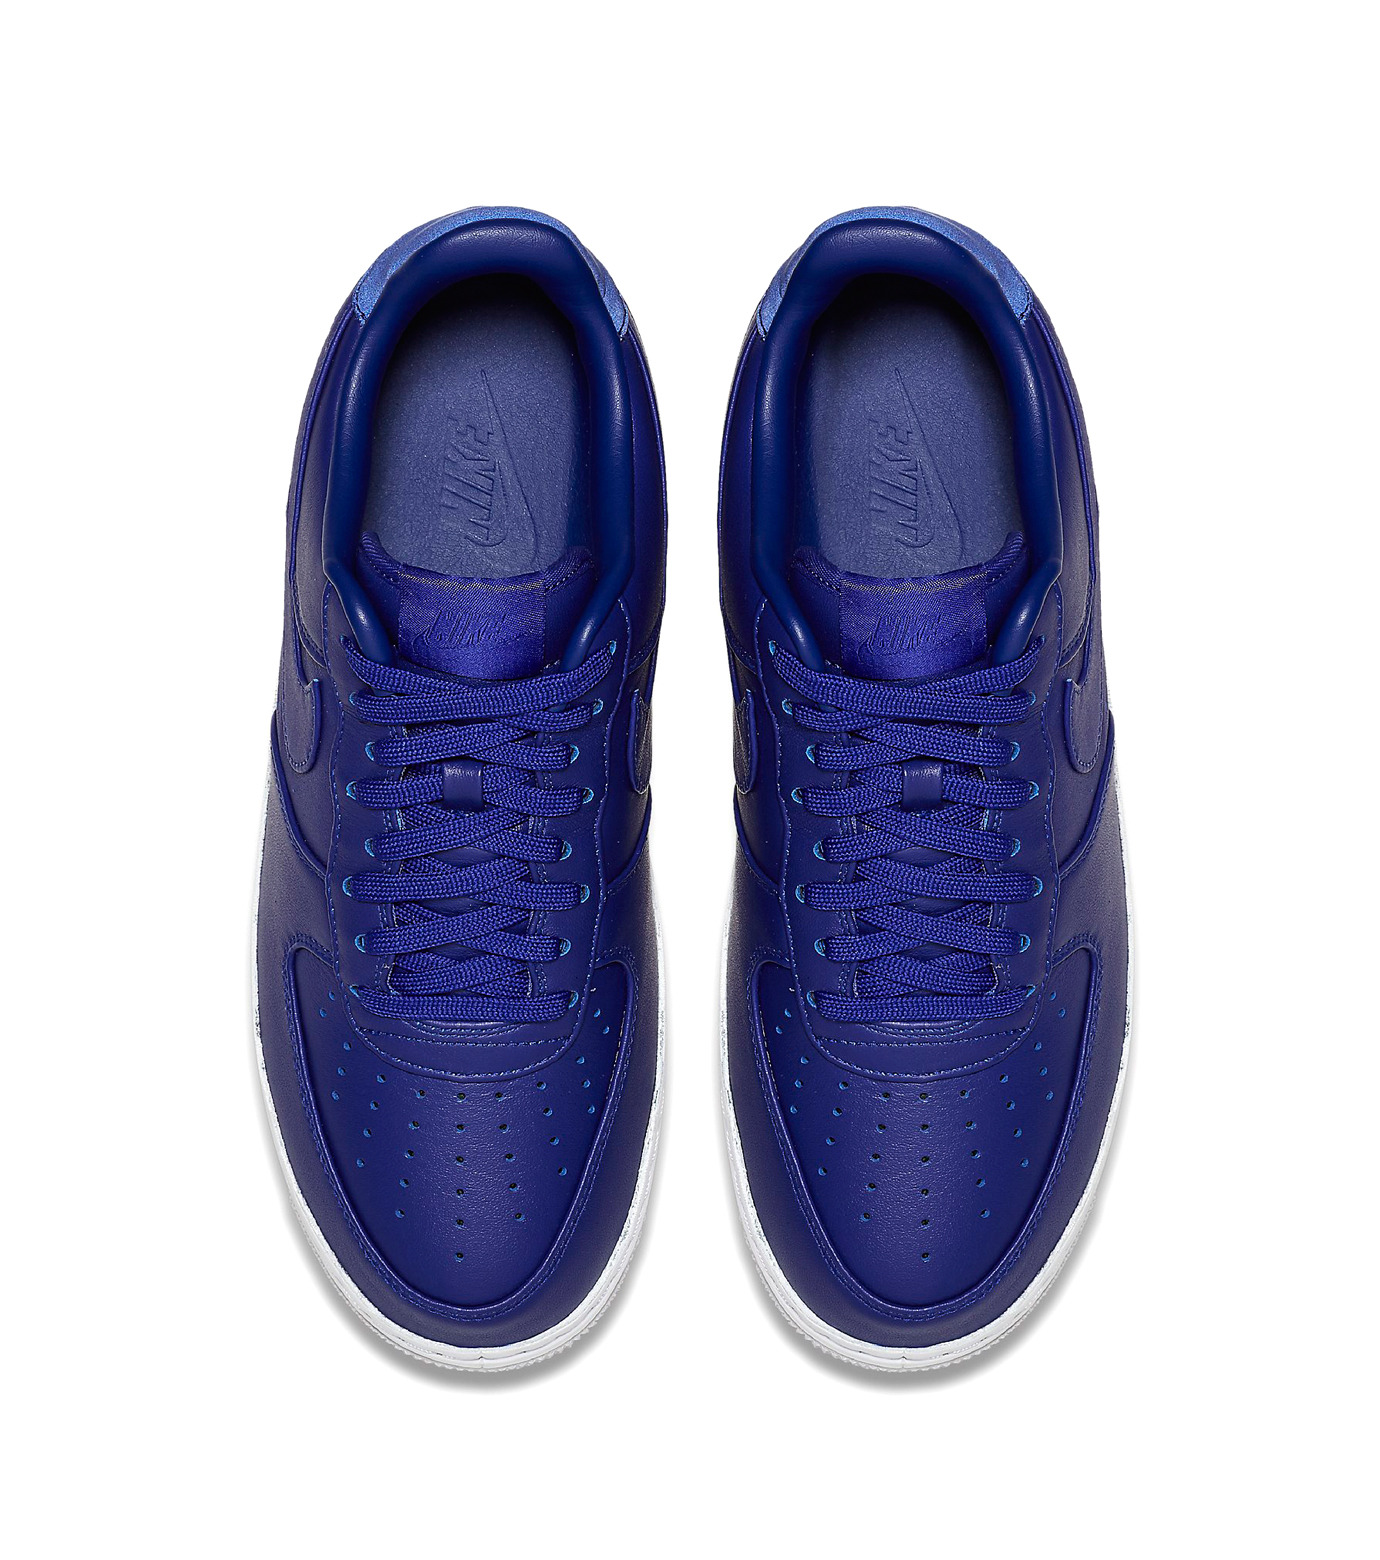 NIKE(ナイキ)のAIR FORCE 1 LOW-BLUE(シューズ/shoes)-555106-402-92 拡大詳細画像4